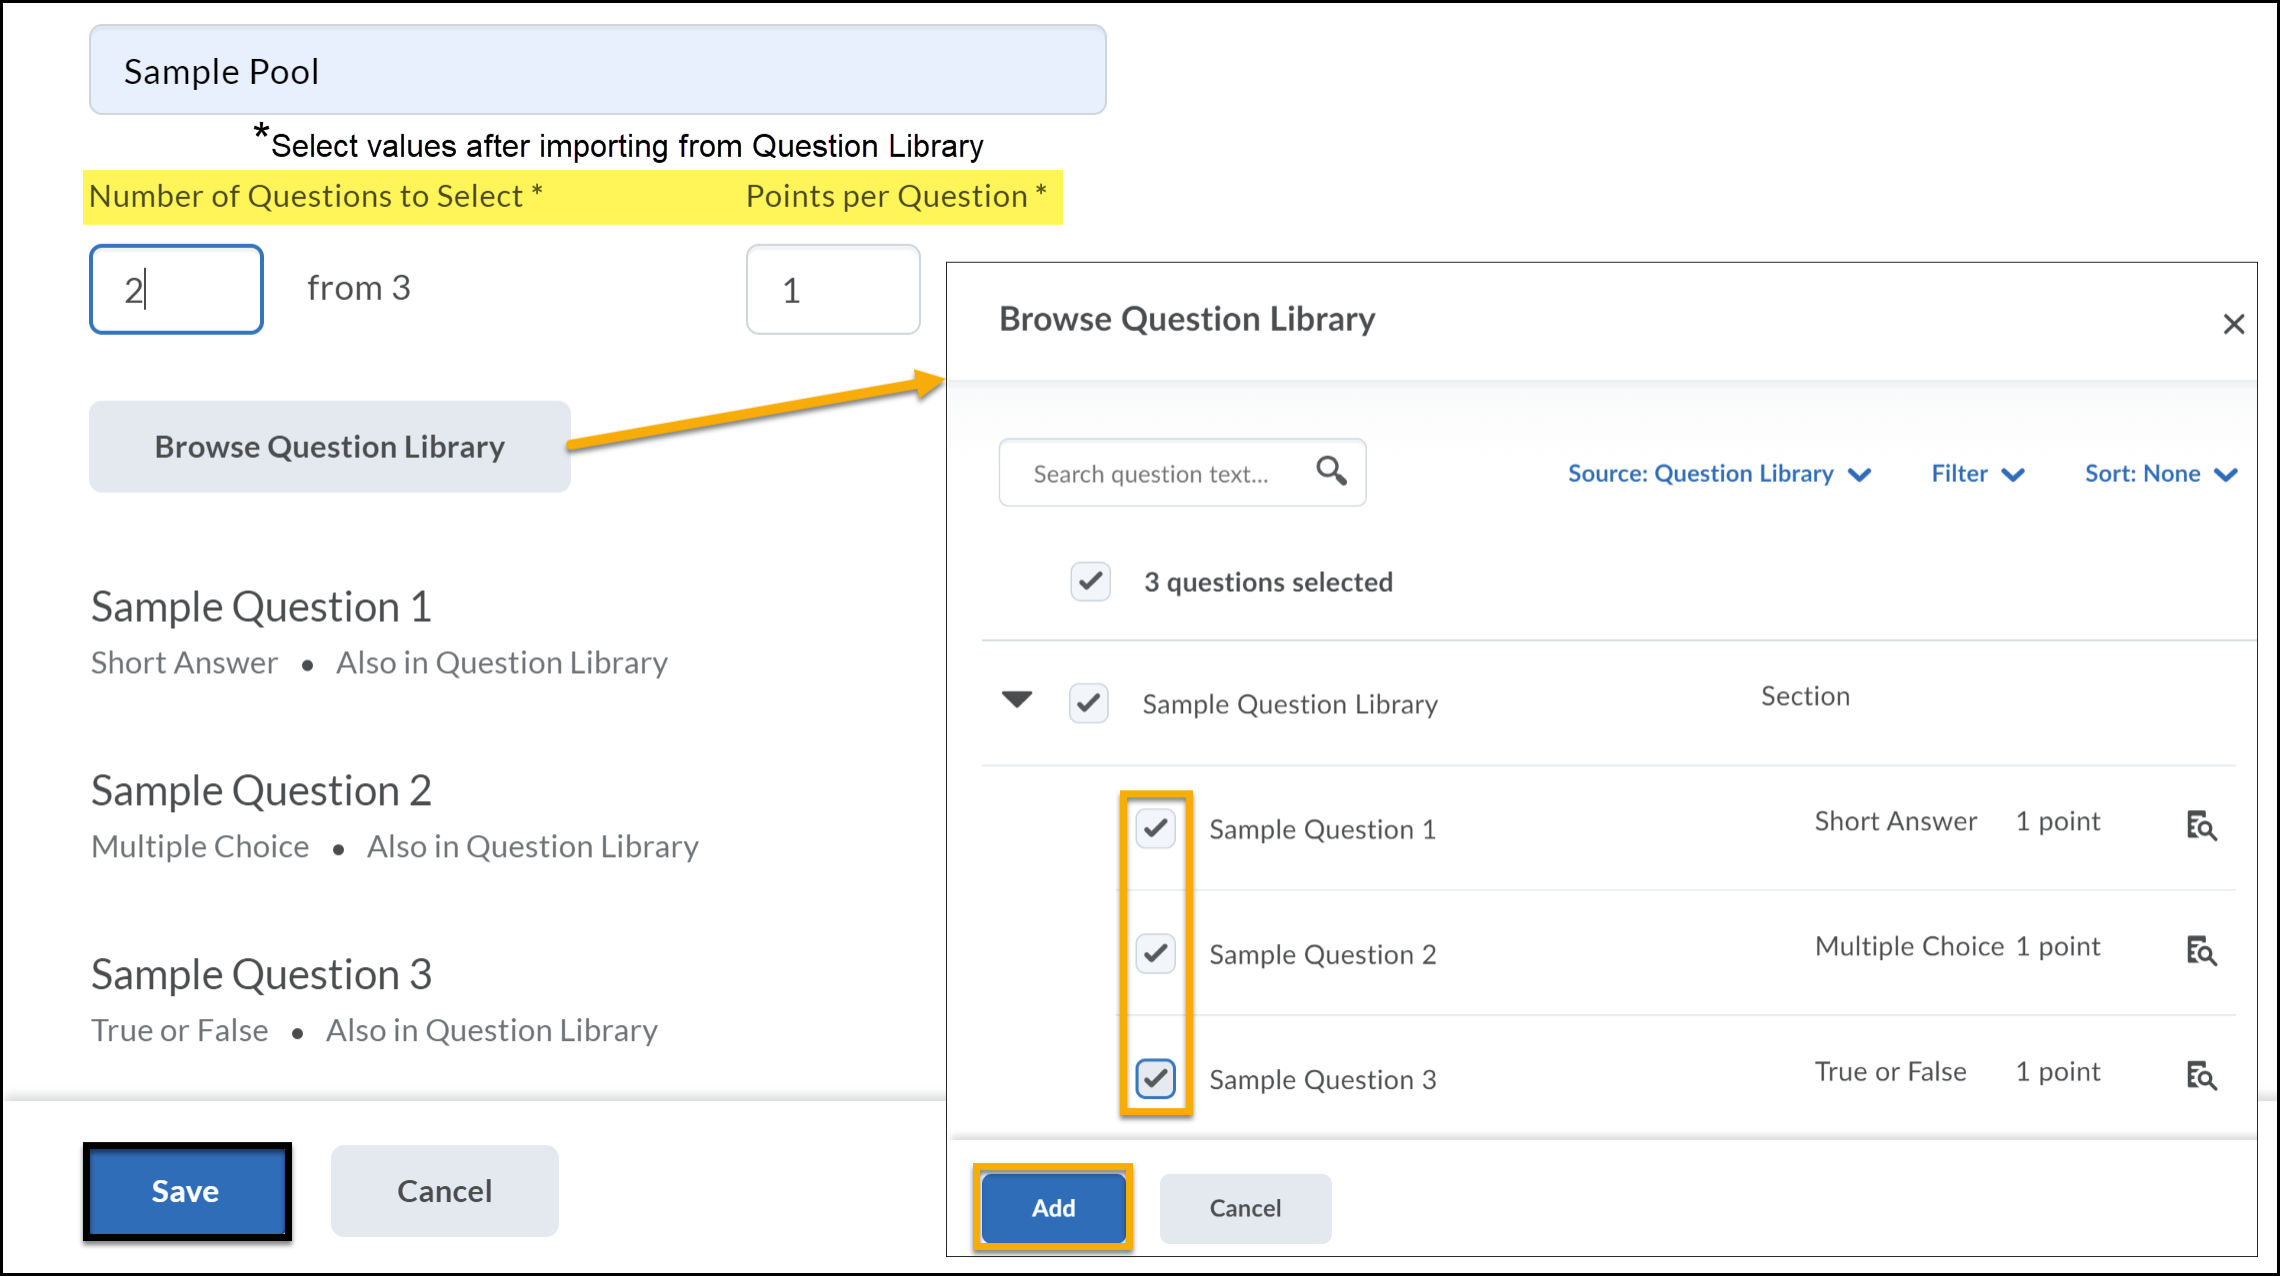 Browse Question Library button with arrow pointing to expanded window. Sample questions checked to add. Number of Questions to Select and Points per Question highlighted.